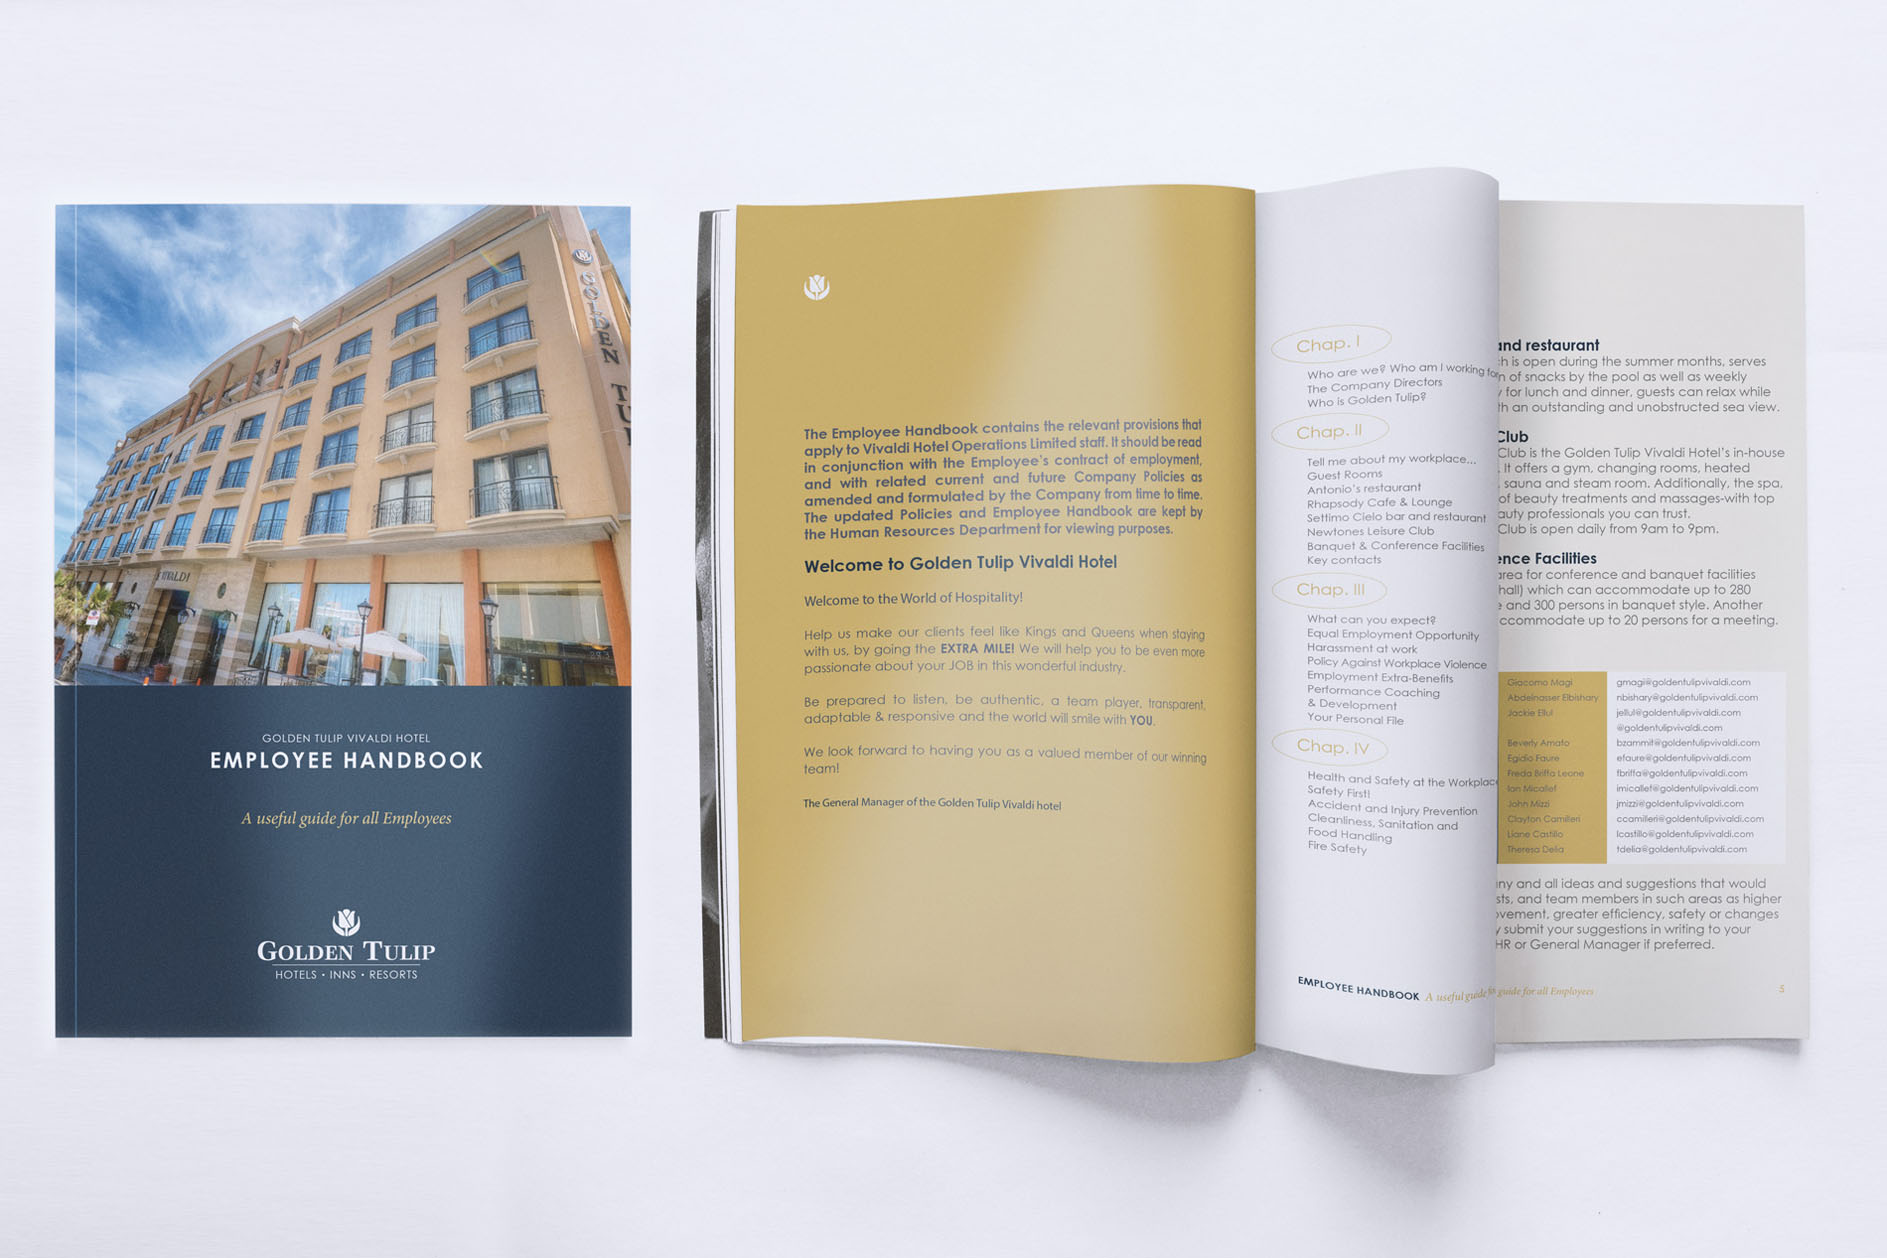 4Sight Create Branding & Digital Marketing Agency Malta - Project: Golden Tulip Vivaldi Employee handbook design